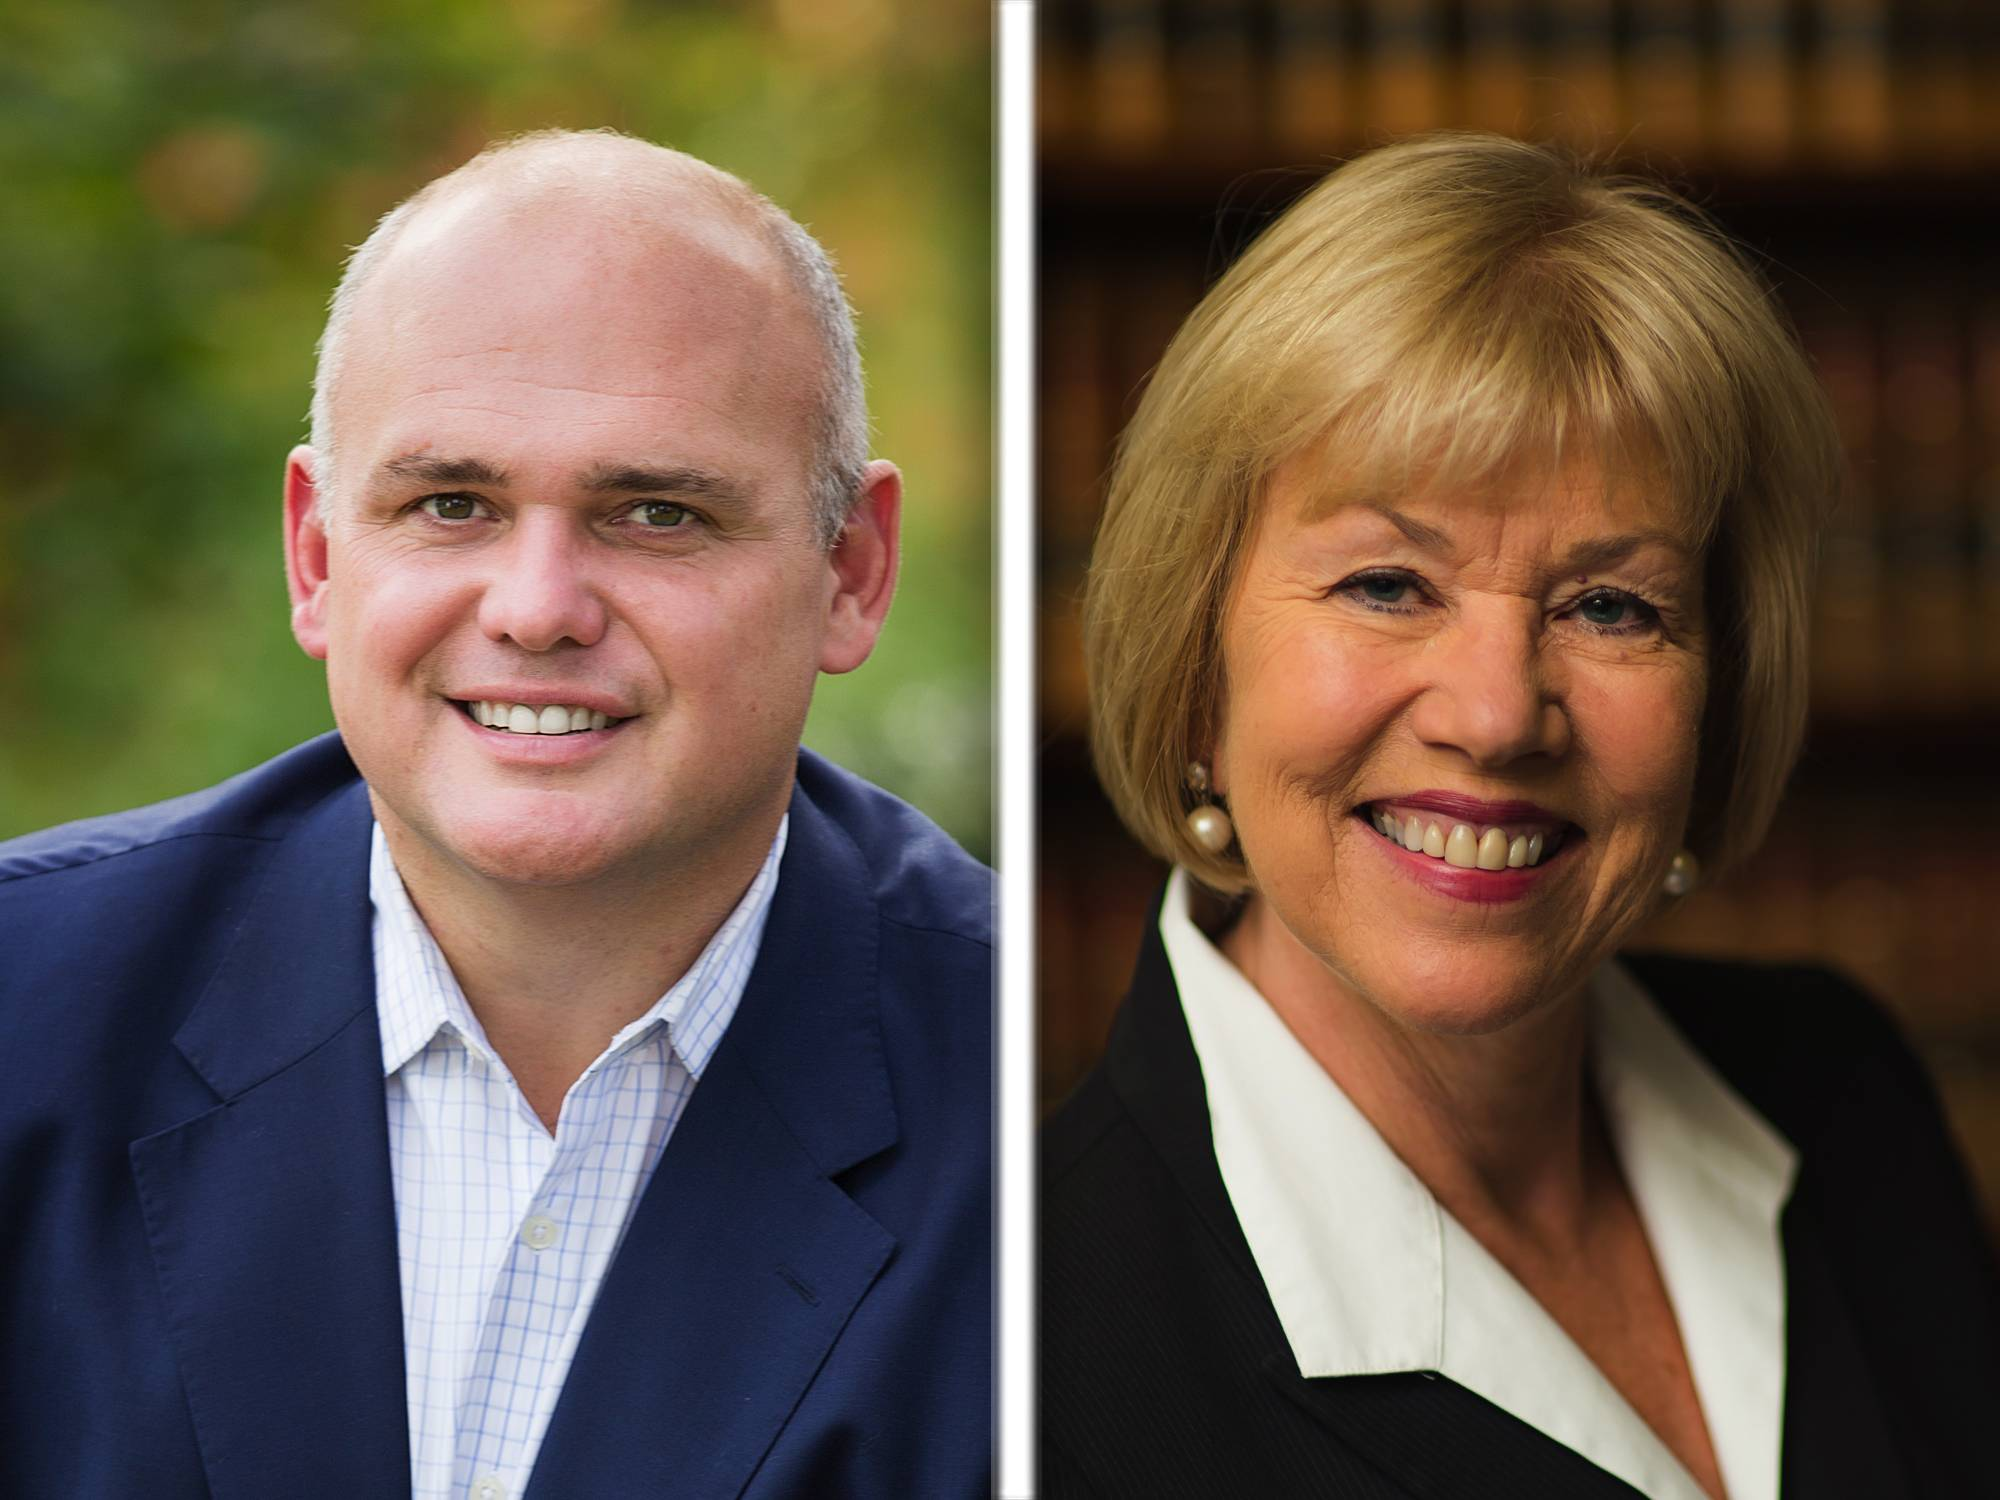 Republican challenger Barrett Davie and Democratic incumbent Julie Morrison are running for the 29th state Senate District seat.